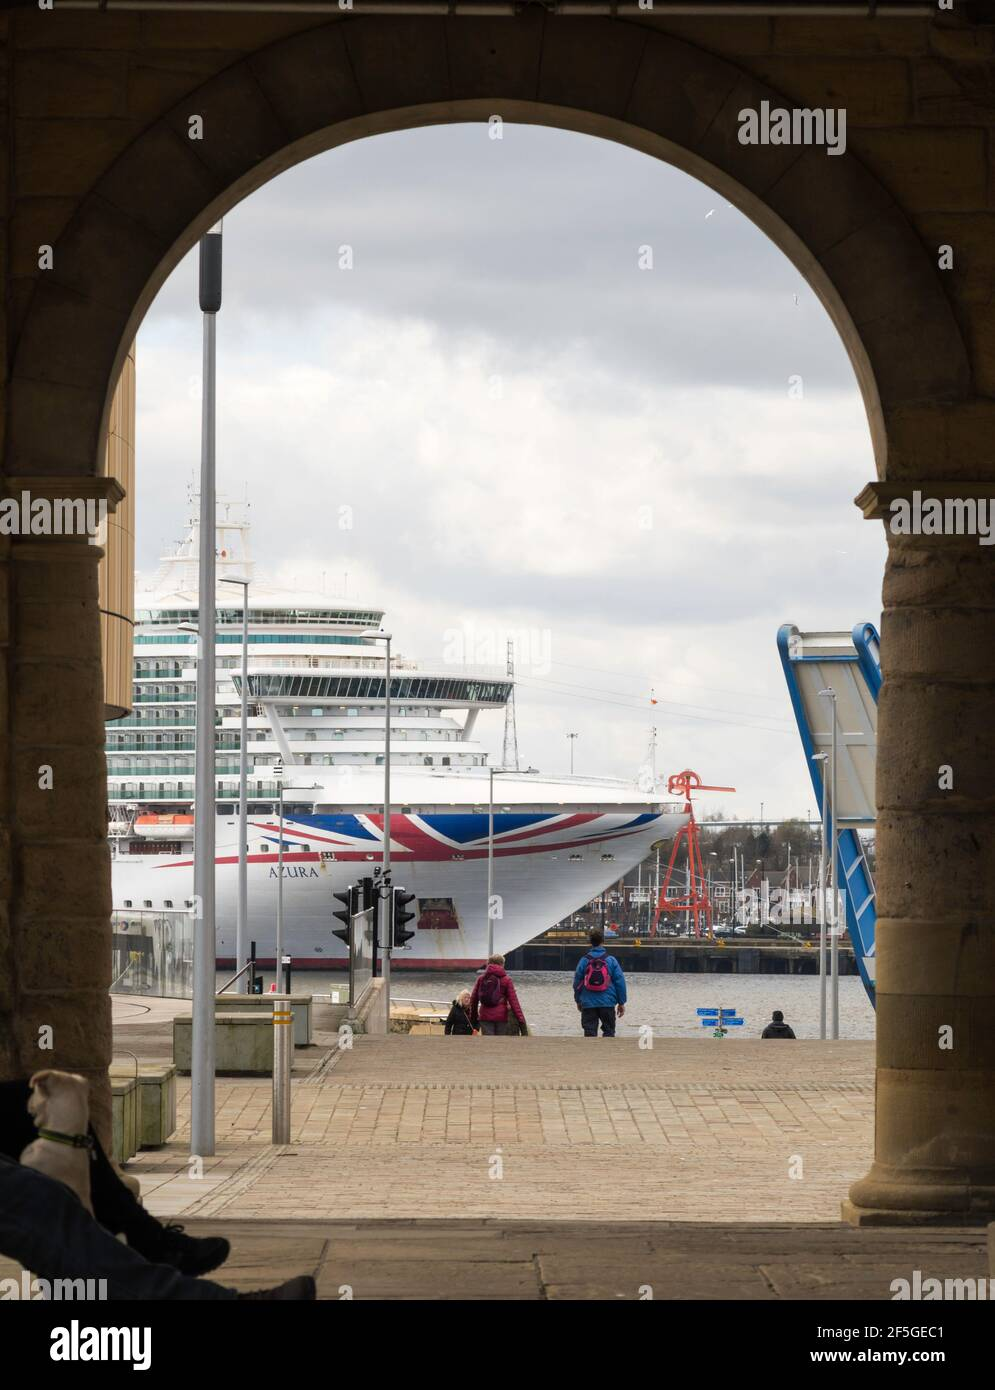 P&O Cruises cruise ship Azura berthed at North Shields on the river Tyne laid up during the Covid pandemic, north east England, UK Stock Photo